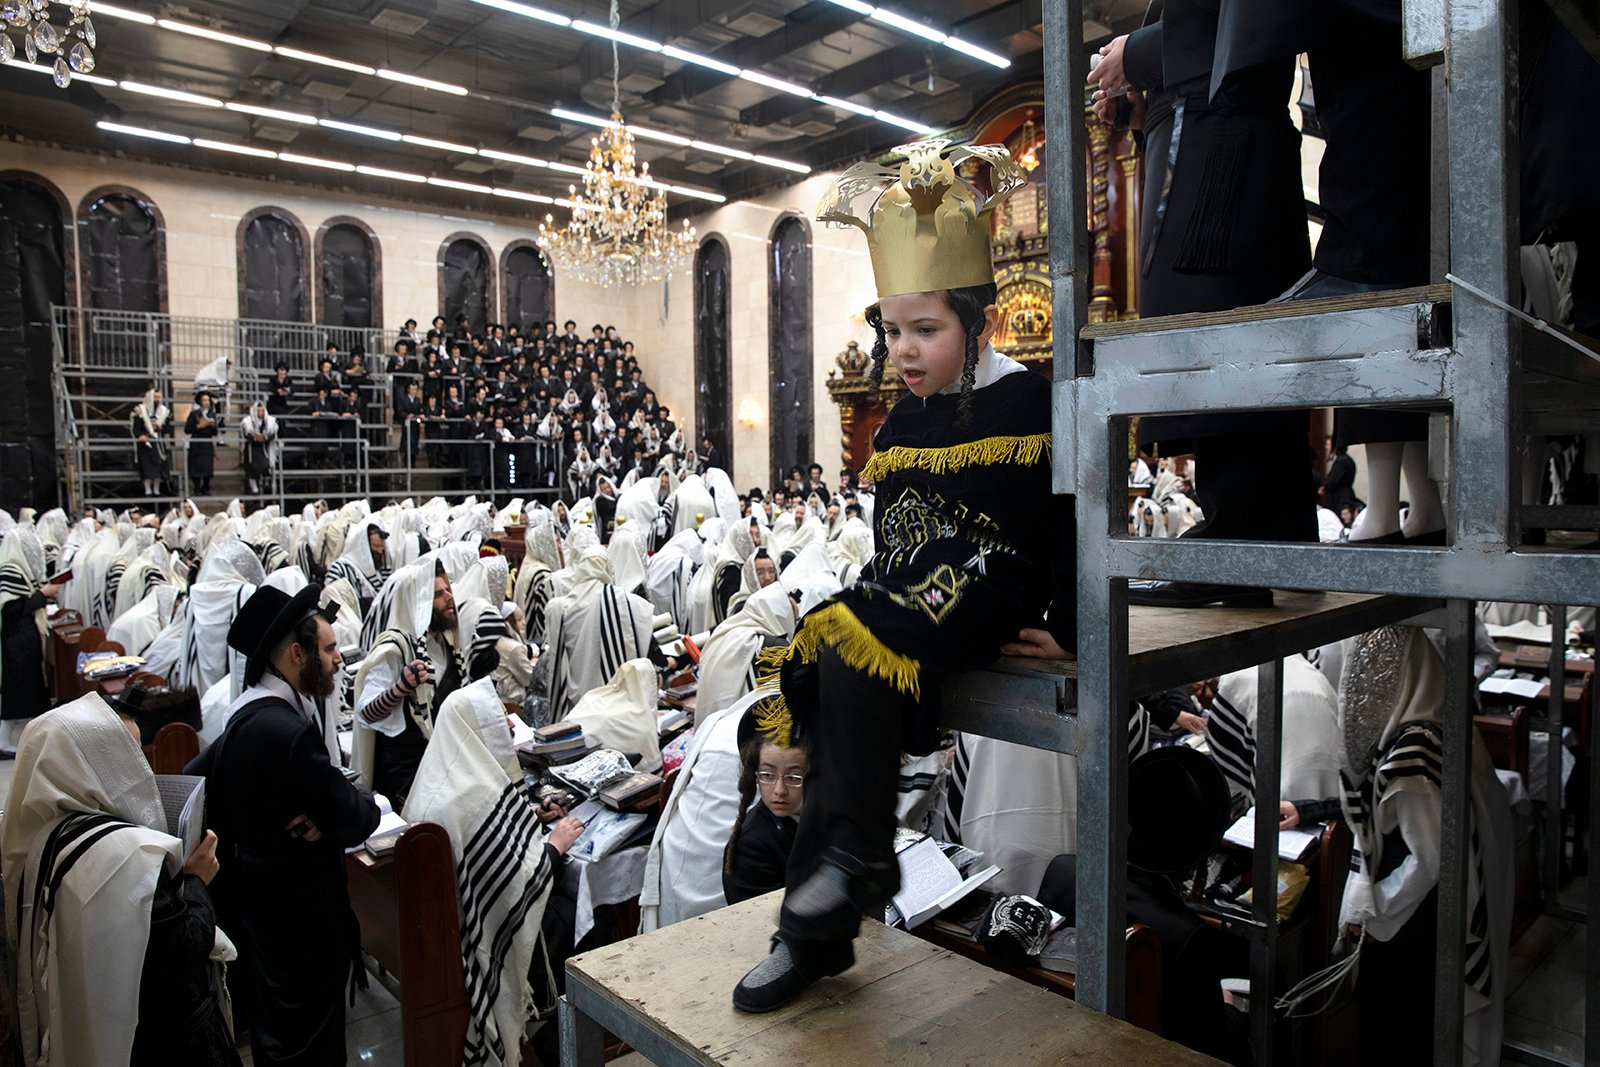 Jewish Ultra-Orthodox men and children, some wearing costumes read the Book of Esther, which tells the story of the Jewish festival of Purim, at a synagogue in Bnei Brak, Israel, Friday, Feb 26, 2021. The Jewish holiday of Purim commemorates the Jews' salvation from genocide in ancient Persia, as recounted in the Book of Esther. (AP Photo/Oded Balilty)